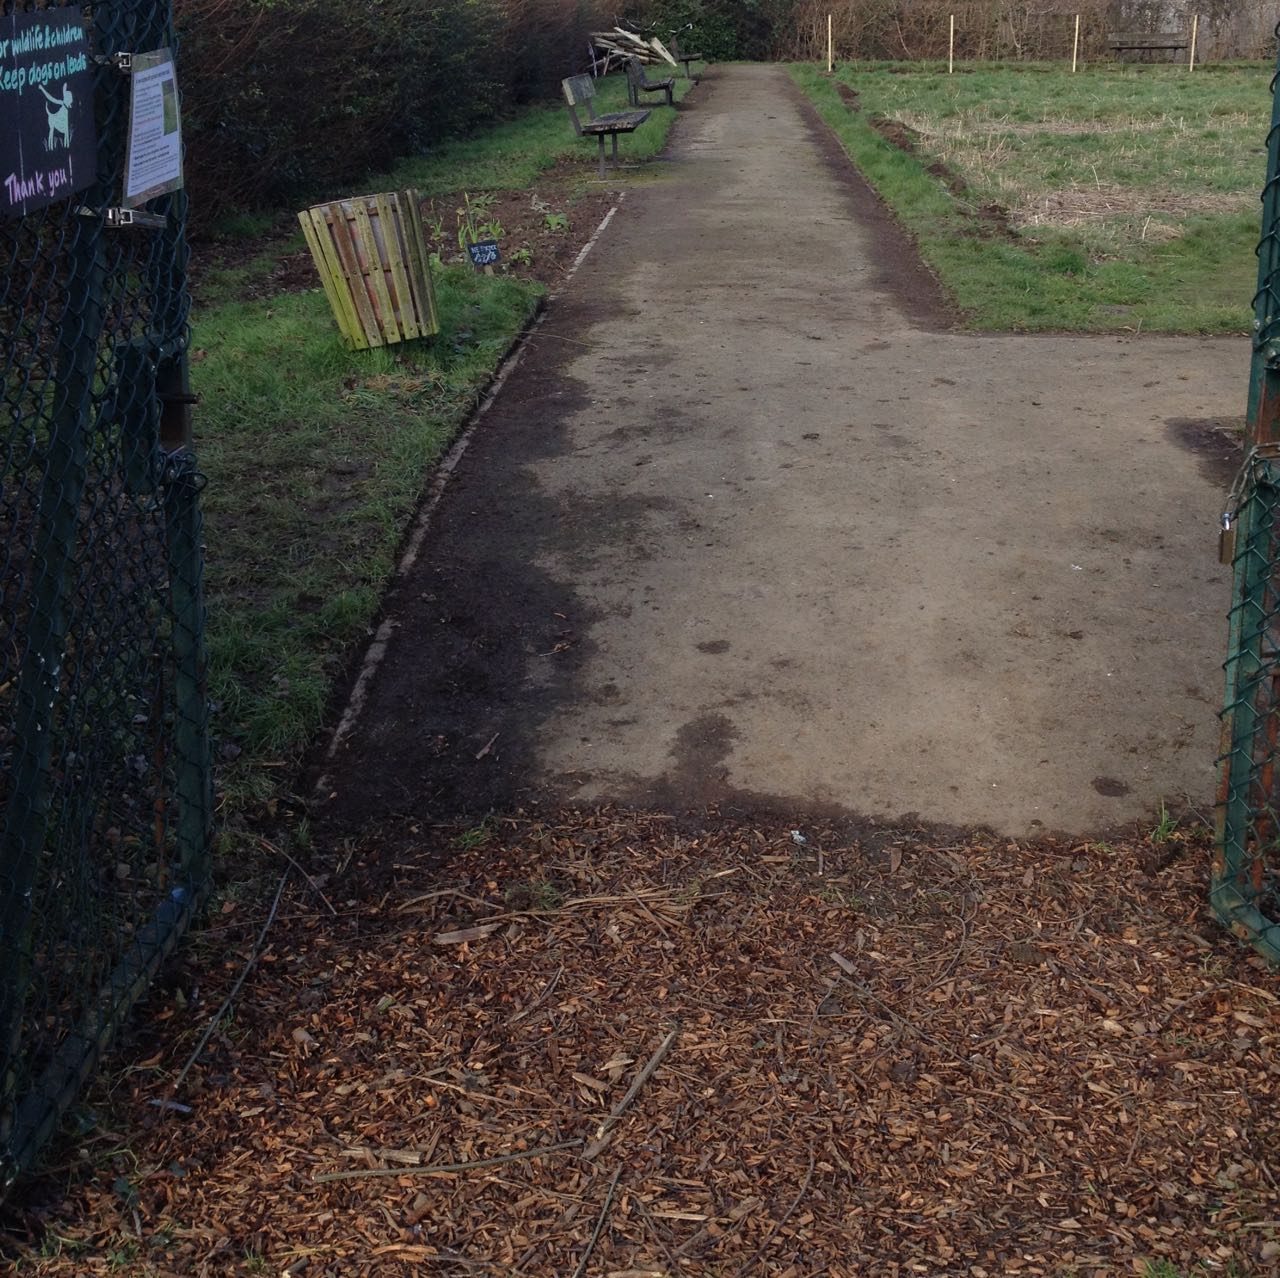 The entrance to the garden - with sharp edges.